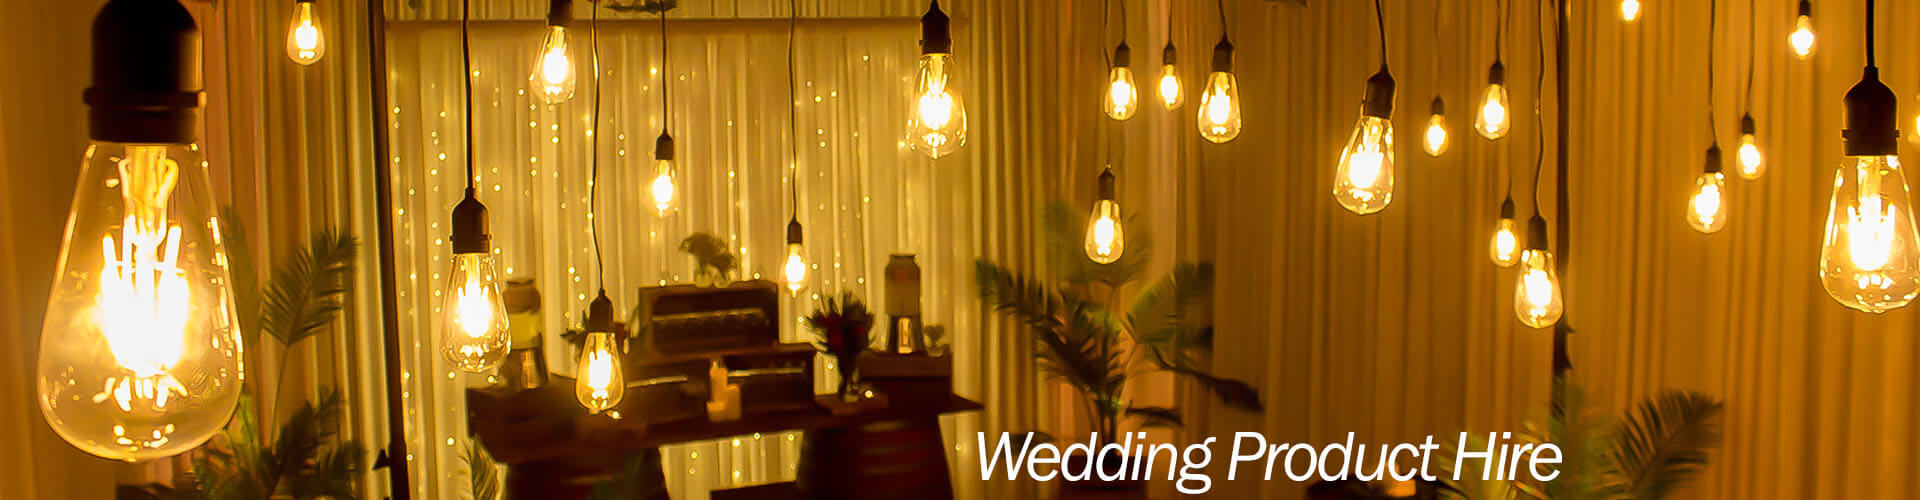 wedding product hire melbourne